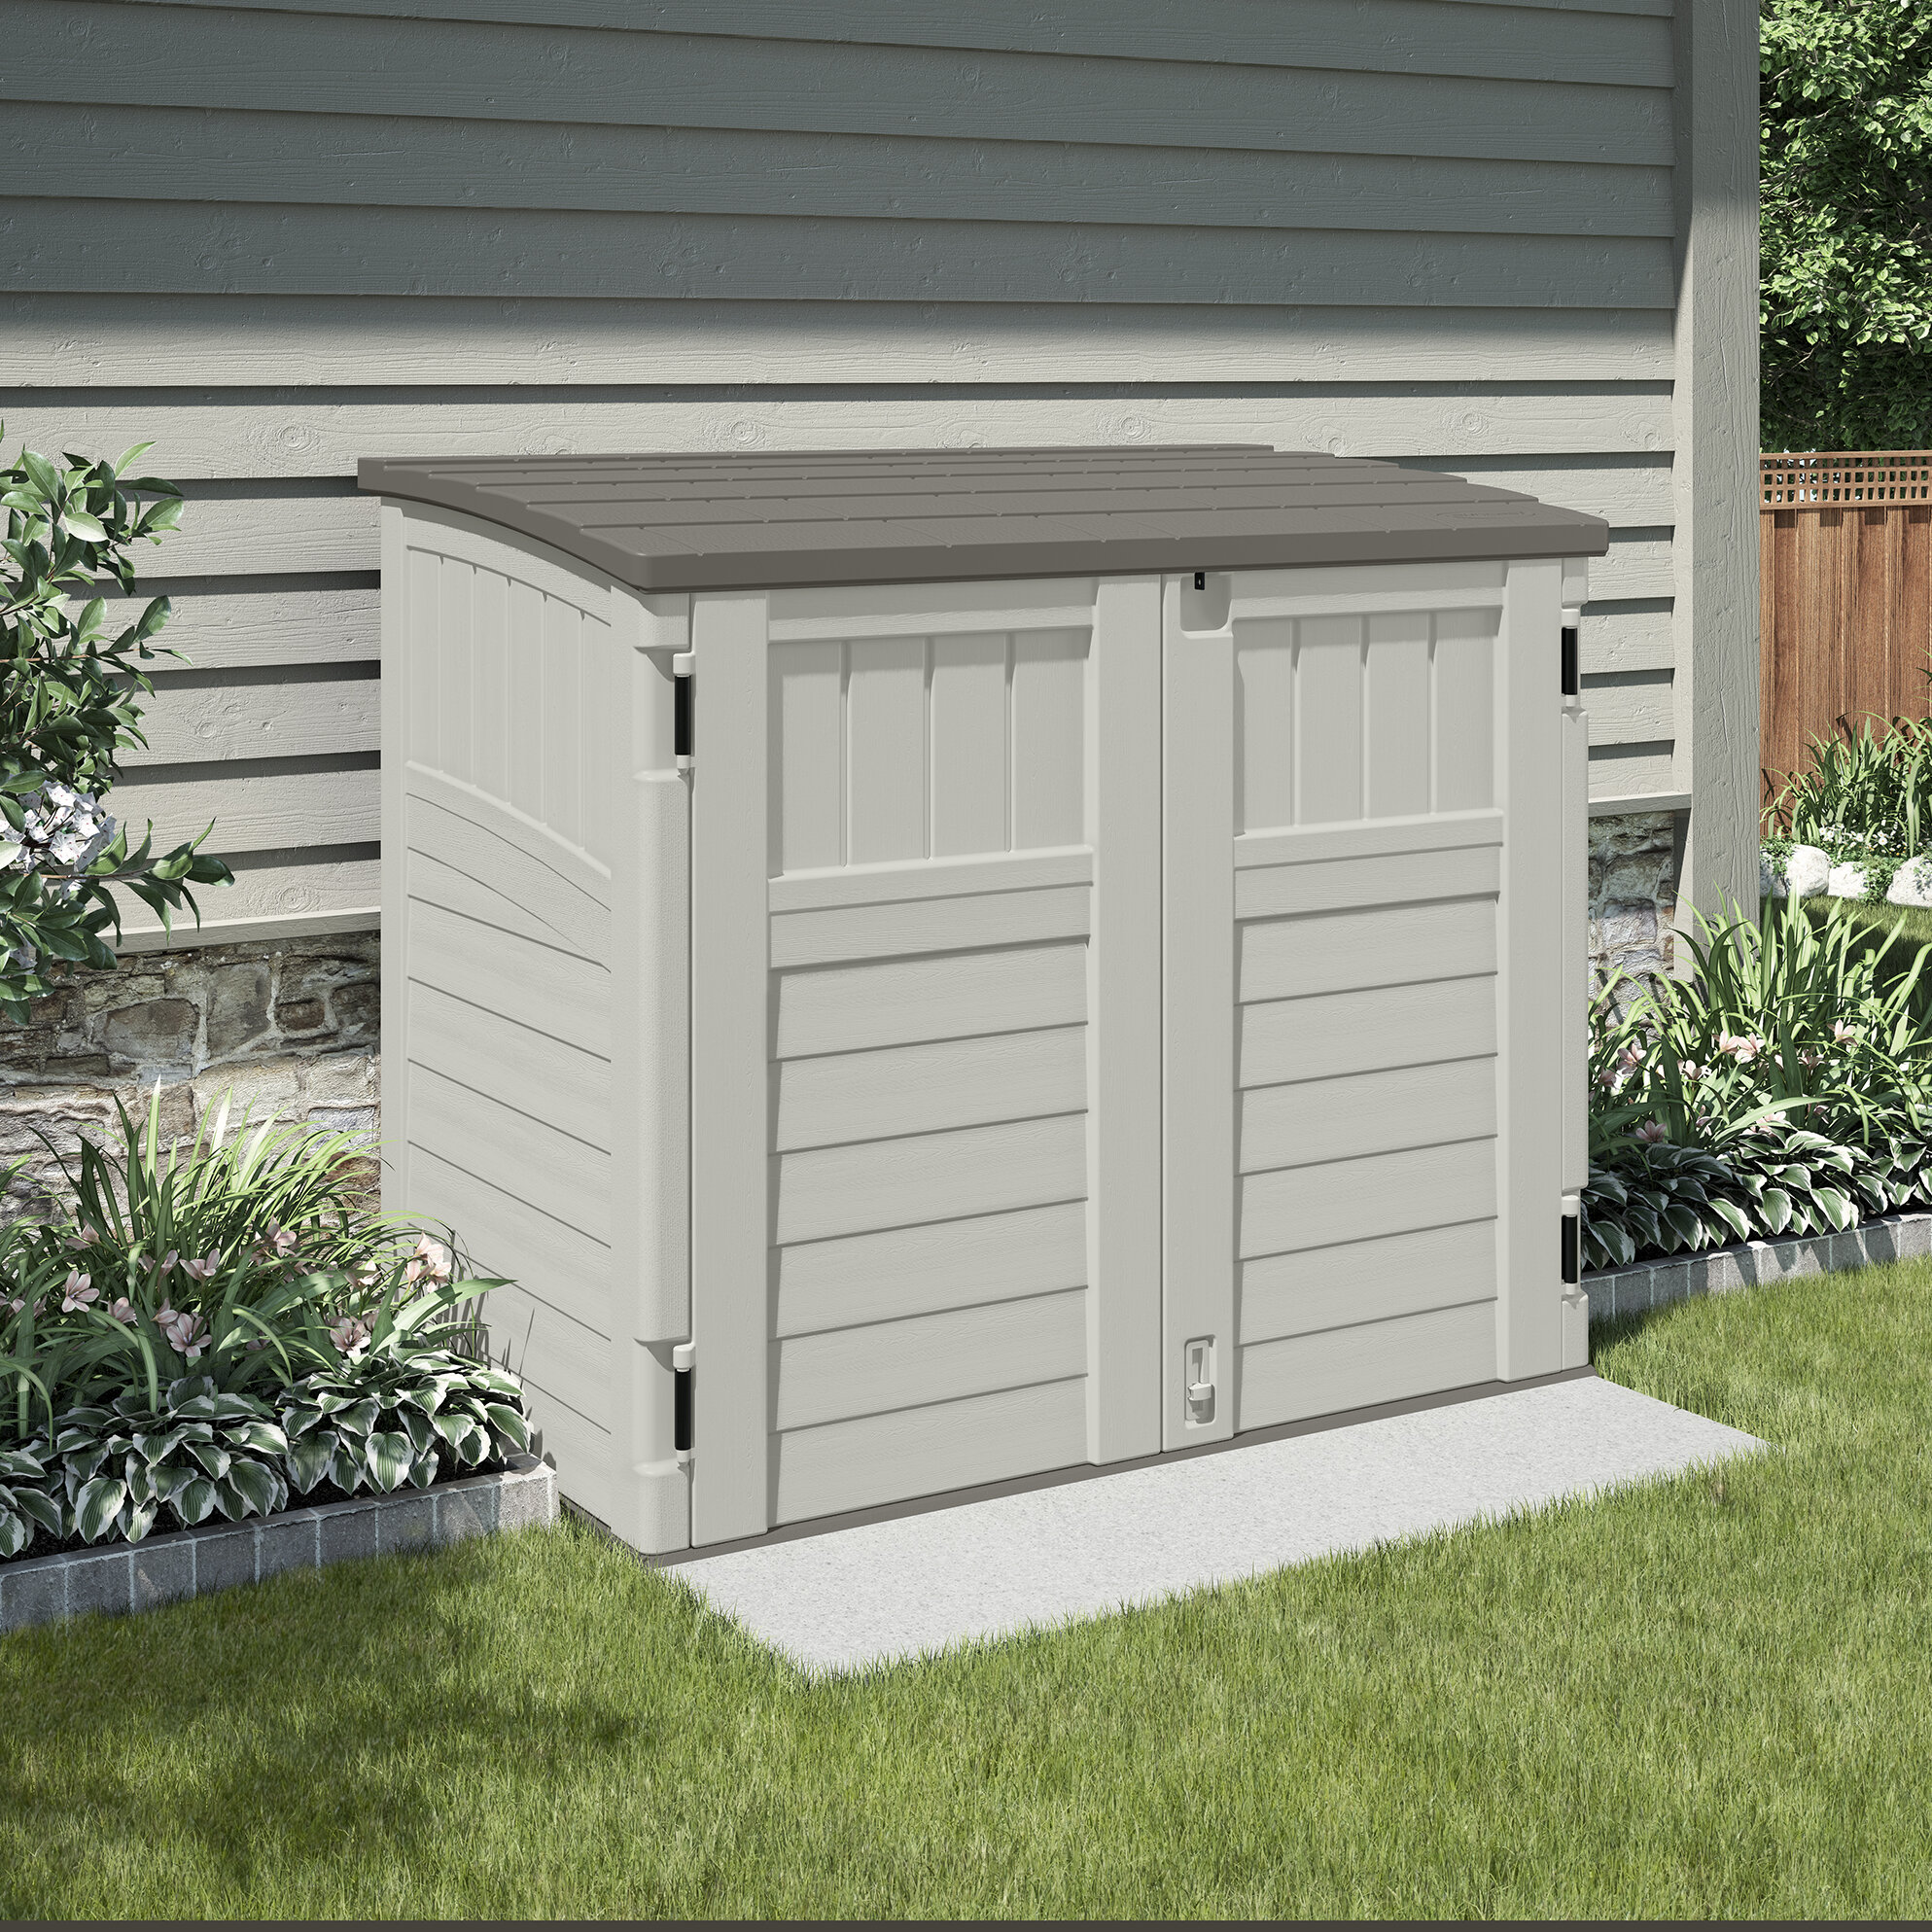 options builders bird for inside home boyz ideas wood diy rubbermaid of redesign the storage sheds image